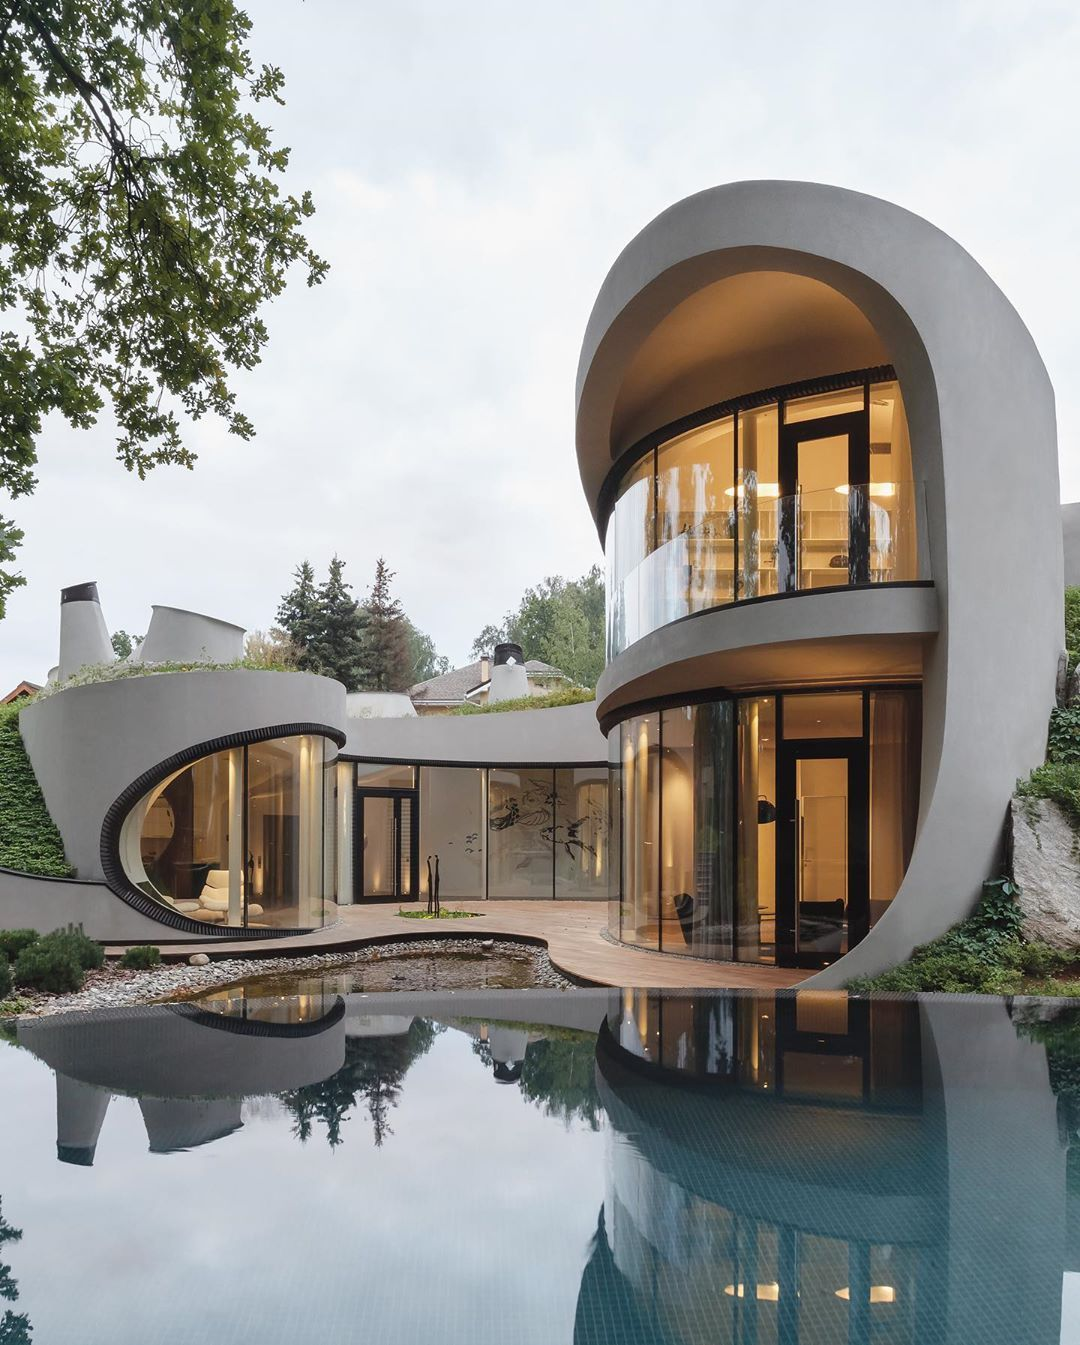 Amazing Architecture On Instagram House In The Landscape Designed By Moscow Based Archite Architecture Design Concept Futuristic Home Futuristic Architecture